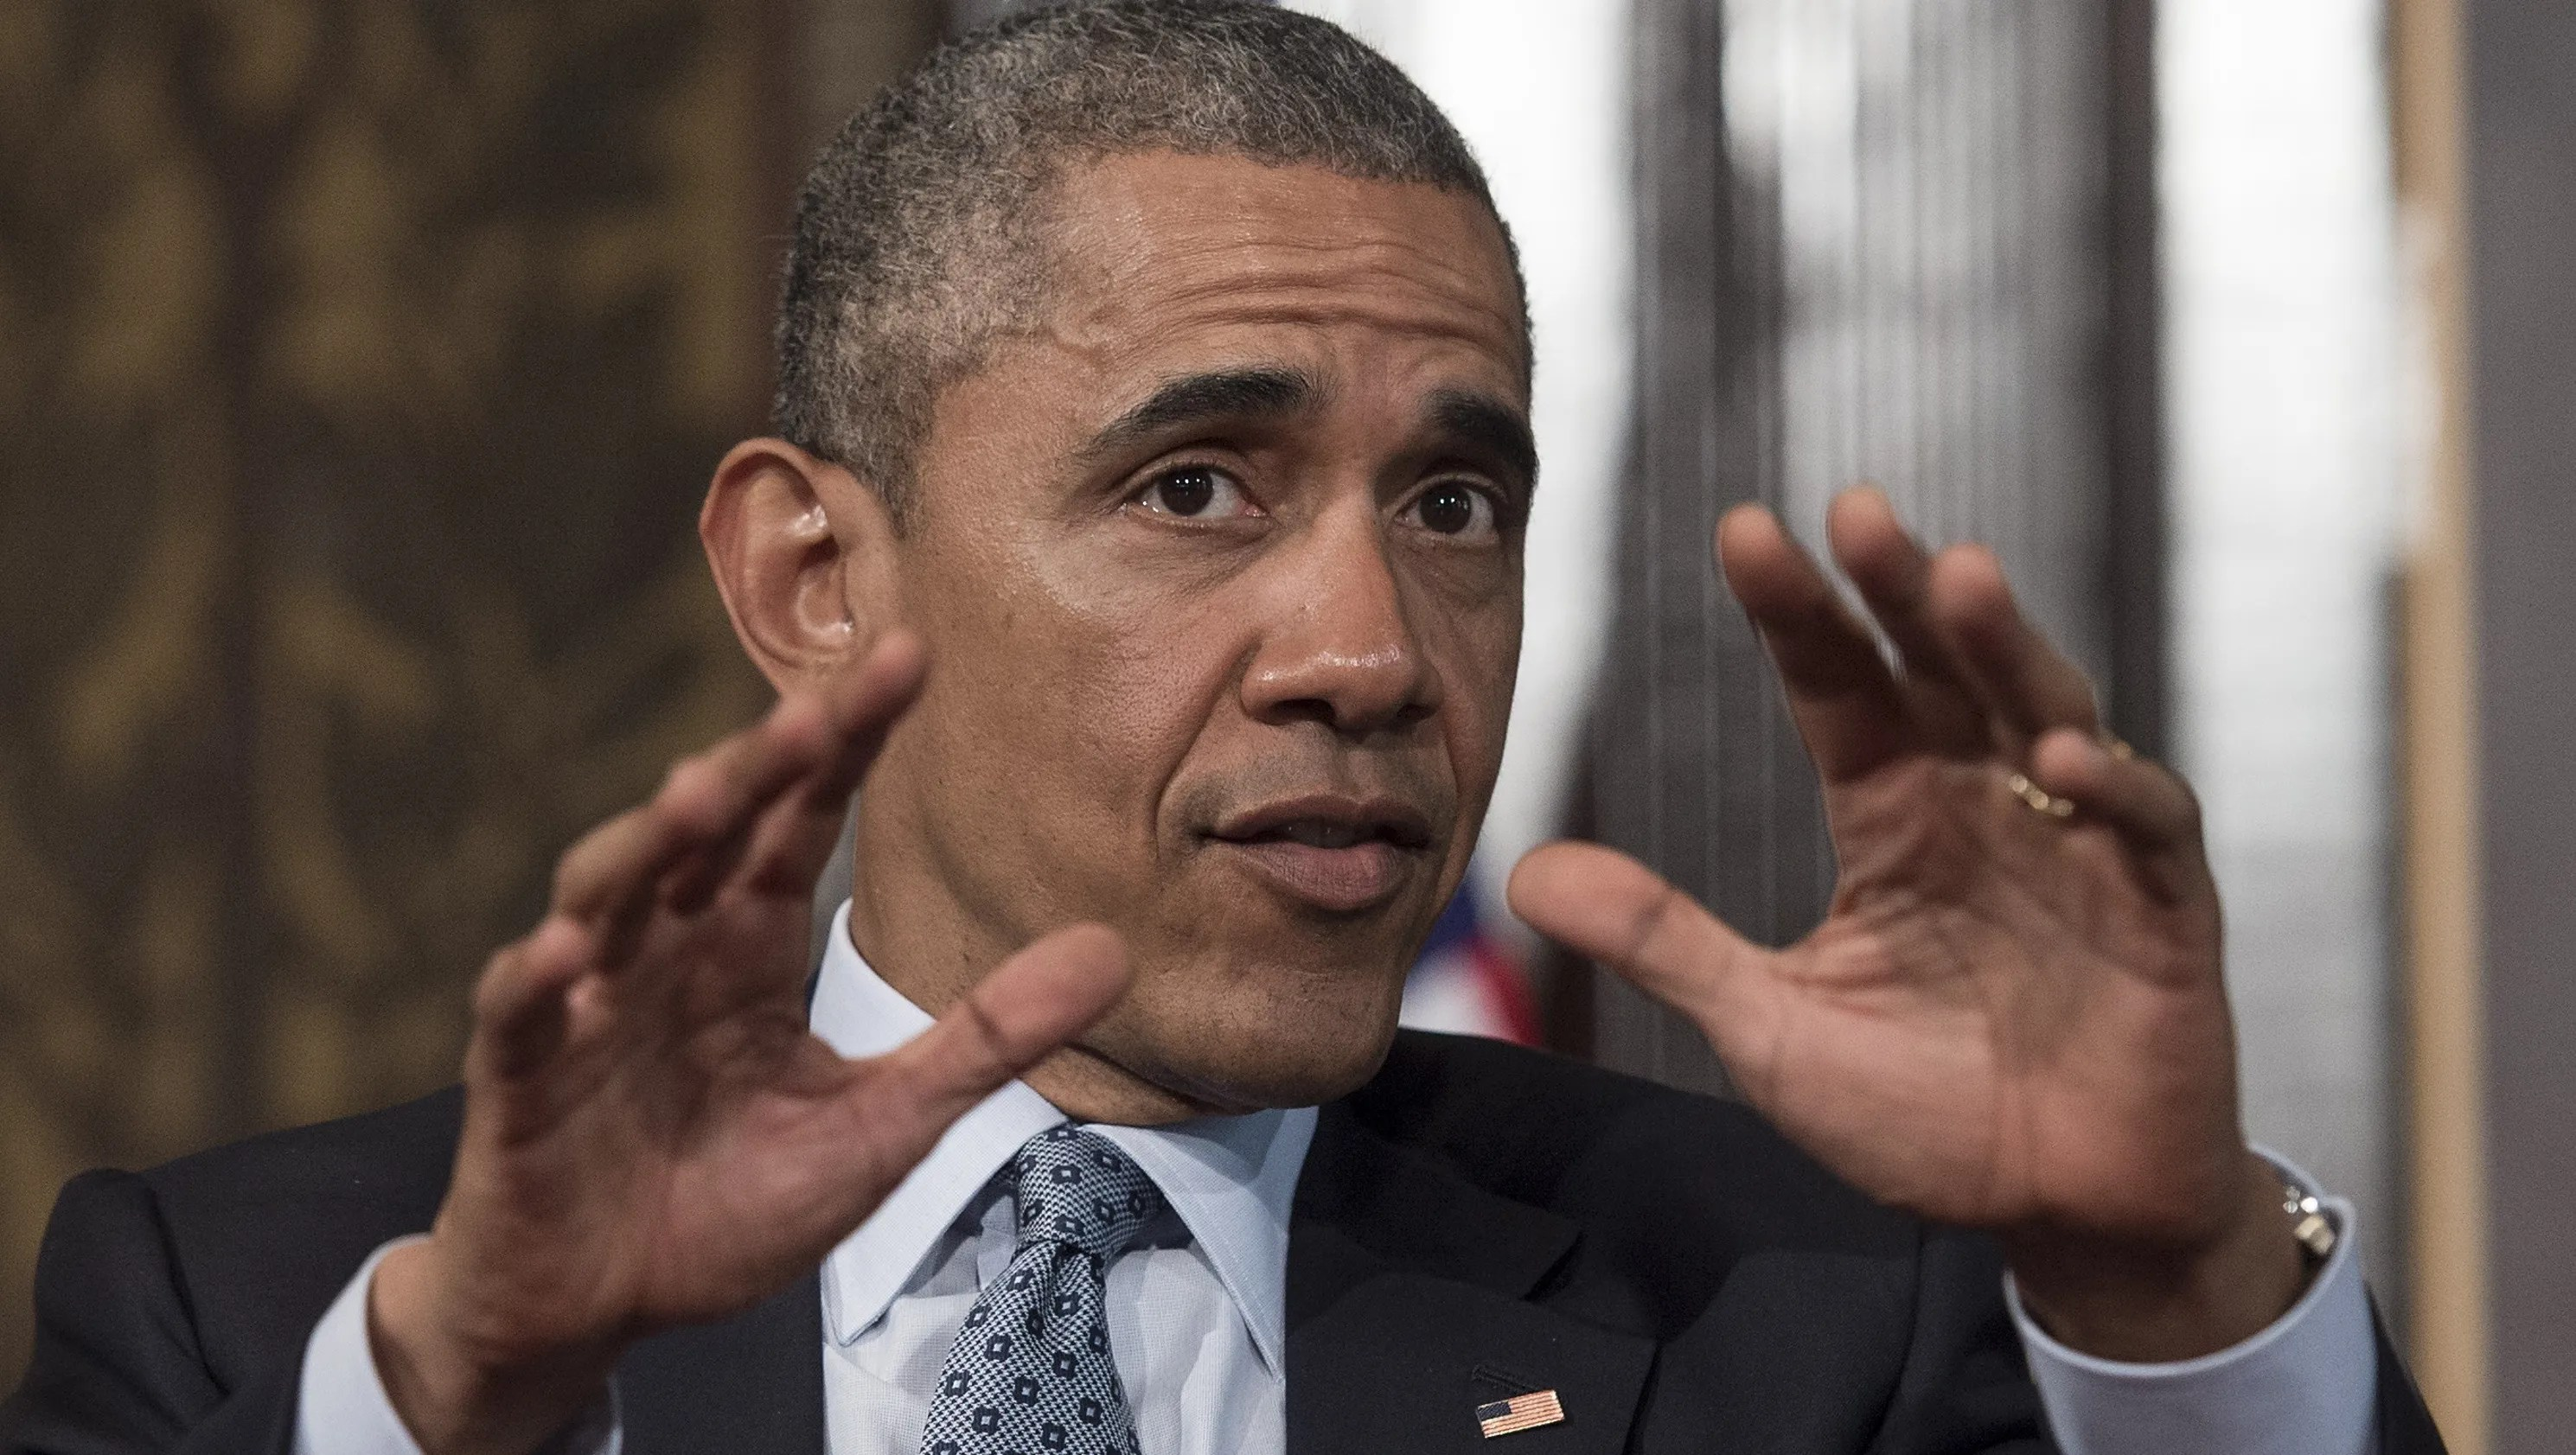 Obama talks about racism drops the n word